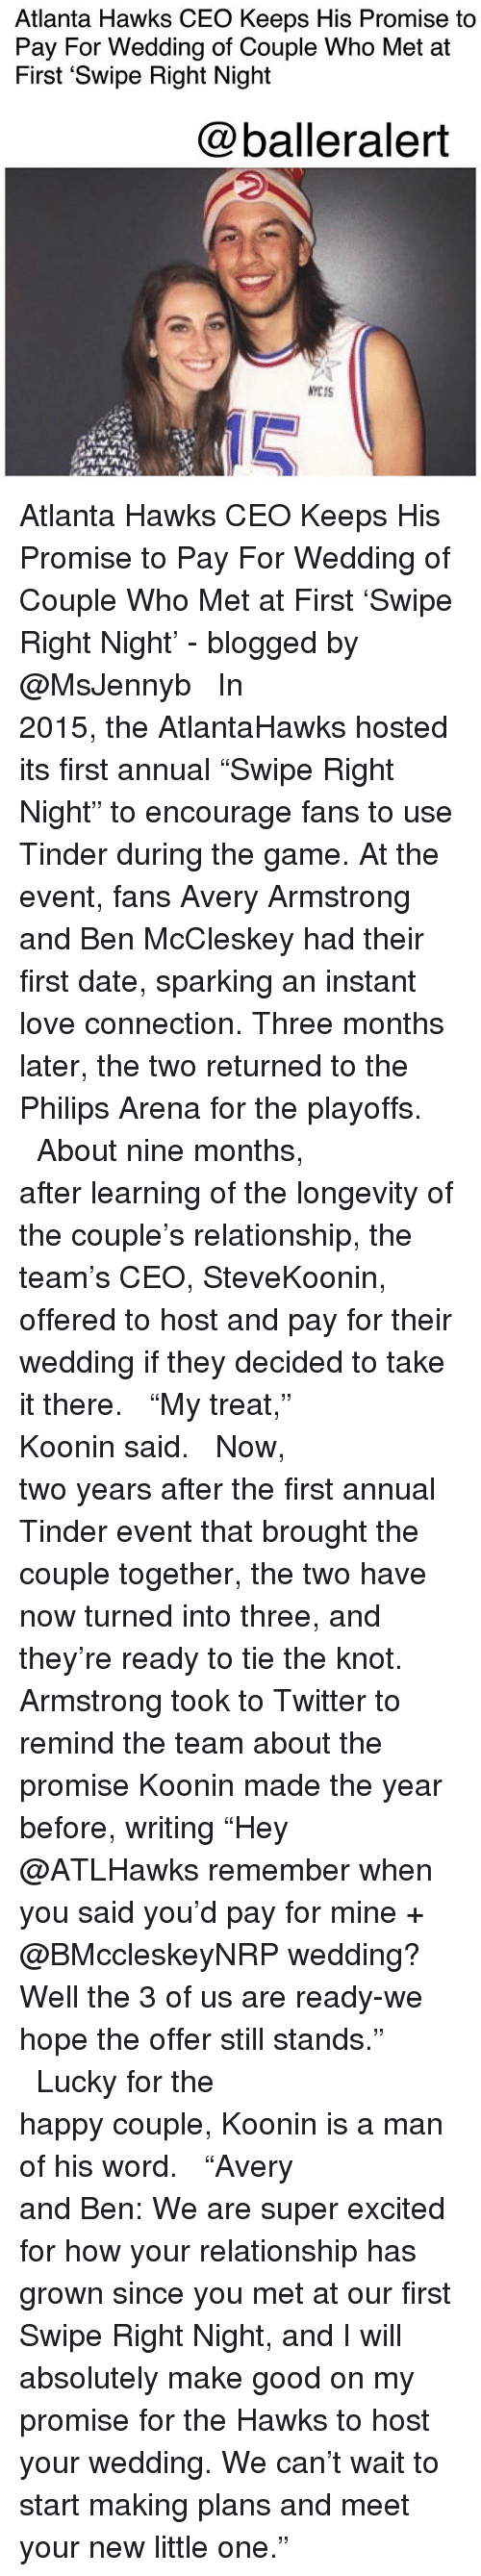 """Atlanta Hawks, Love, and Memes: Atlanta Hawks CEO Keeps His Promise to  Pay For Wedding of Couple Who Met at  First 'Swipe Right Night  @balleralert  NYCIS  10 Atlanta Hawks CEO Keeps His Promise to Pay For Wedding of Couple Who Met at First 'Swipe Right Night' - blogged by @MsJennyb ⠀⠀⠀⠀⠀⠀⠀⠀⠀ ⠀⠀⠀⠀⠀⠀⠀⠀⠀ In 2015, the AtlantaHawks hosted its first annual """"Swipe Right Night"""" to encourage fans to use Tinder during the game. At the event, fans Avery Armstrong and Ben McCleskey had their first date, sparking an instant love connection. Three months later, the two returned to the Philips Arena for the playoffs. ⠀⠀⠀⠀⠀⠀⠀⠀⠀ ⠀⠀⠀⠀⠀⠀⠀⠀⠀ About nine months, after learning of the longevity of the couple's relationship, the team's CEO, SteveKoonin, offered to host and pay for their wedding if they decided to take it there. ⠀⠀⠀⠀⠀⠀⠀⠀⠀ ⠀⠀⠀⠀⠀⠀⠀⠀⠀ """"My treat,"""" Koonin said. ⠀⠀⠀⠀⠀⠀⠀⠀⠀ ⠀⠀⠀⠀⠀⠀⠀⠀⠀ Now, two years after the first annual Tinder event that brought the couple together, the two have now turned into three, and they're ready to tie the knot. Armstrong took to Twitter to remind the team about the promise Koonin made the year before, writing """"Hey @ATLHawks remember when you said you'd pay for mine + @BMccleskeyNRP wedding? Well the 3 of us are ready-we hope the offer still stands."""" ⠀⠀⠀⠀⠀⠀⠀⠀⠀ ⠀⠀⠀⠀⠀⠀⠀⠀⠀ Lucky for the happy couple, Koonin is a man of his word. ⠀⠀⠀⠀⠀⠀⠀⠀⠀ ⠀⠀⠀⠀⠀⠀⠀⠀⠀ """"Avery and Ben: We are super excited for how your relationship has grown since you met at our first Swipe Right Night, and I will absolutely make good on my promise for the Hawks to host your wedding. We can't wait to start making plans and meet your new little one."""""""